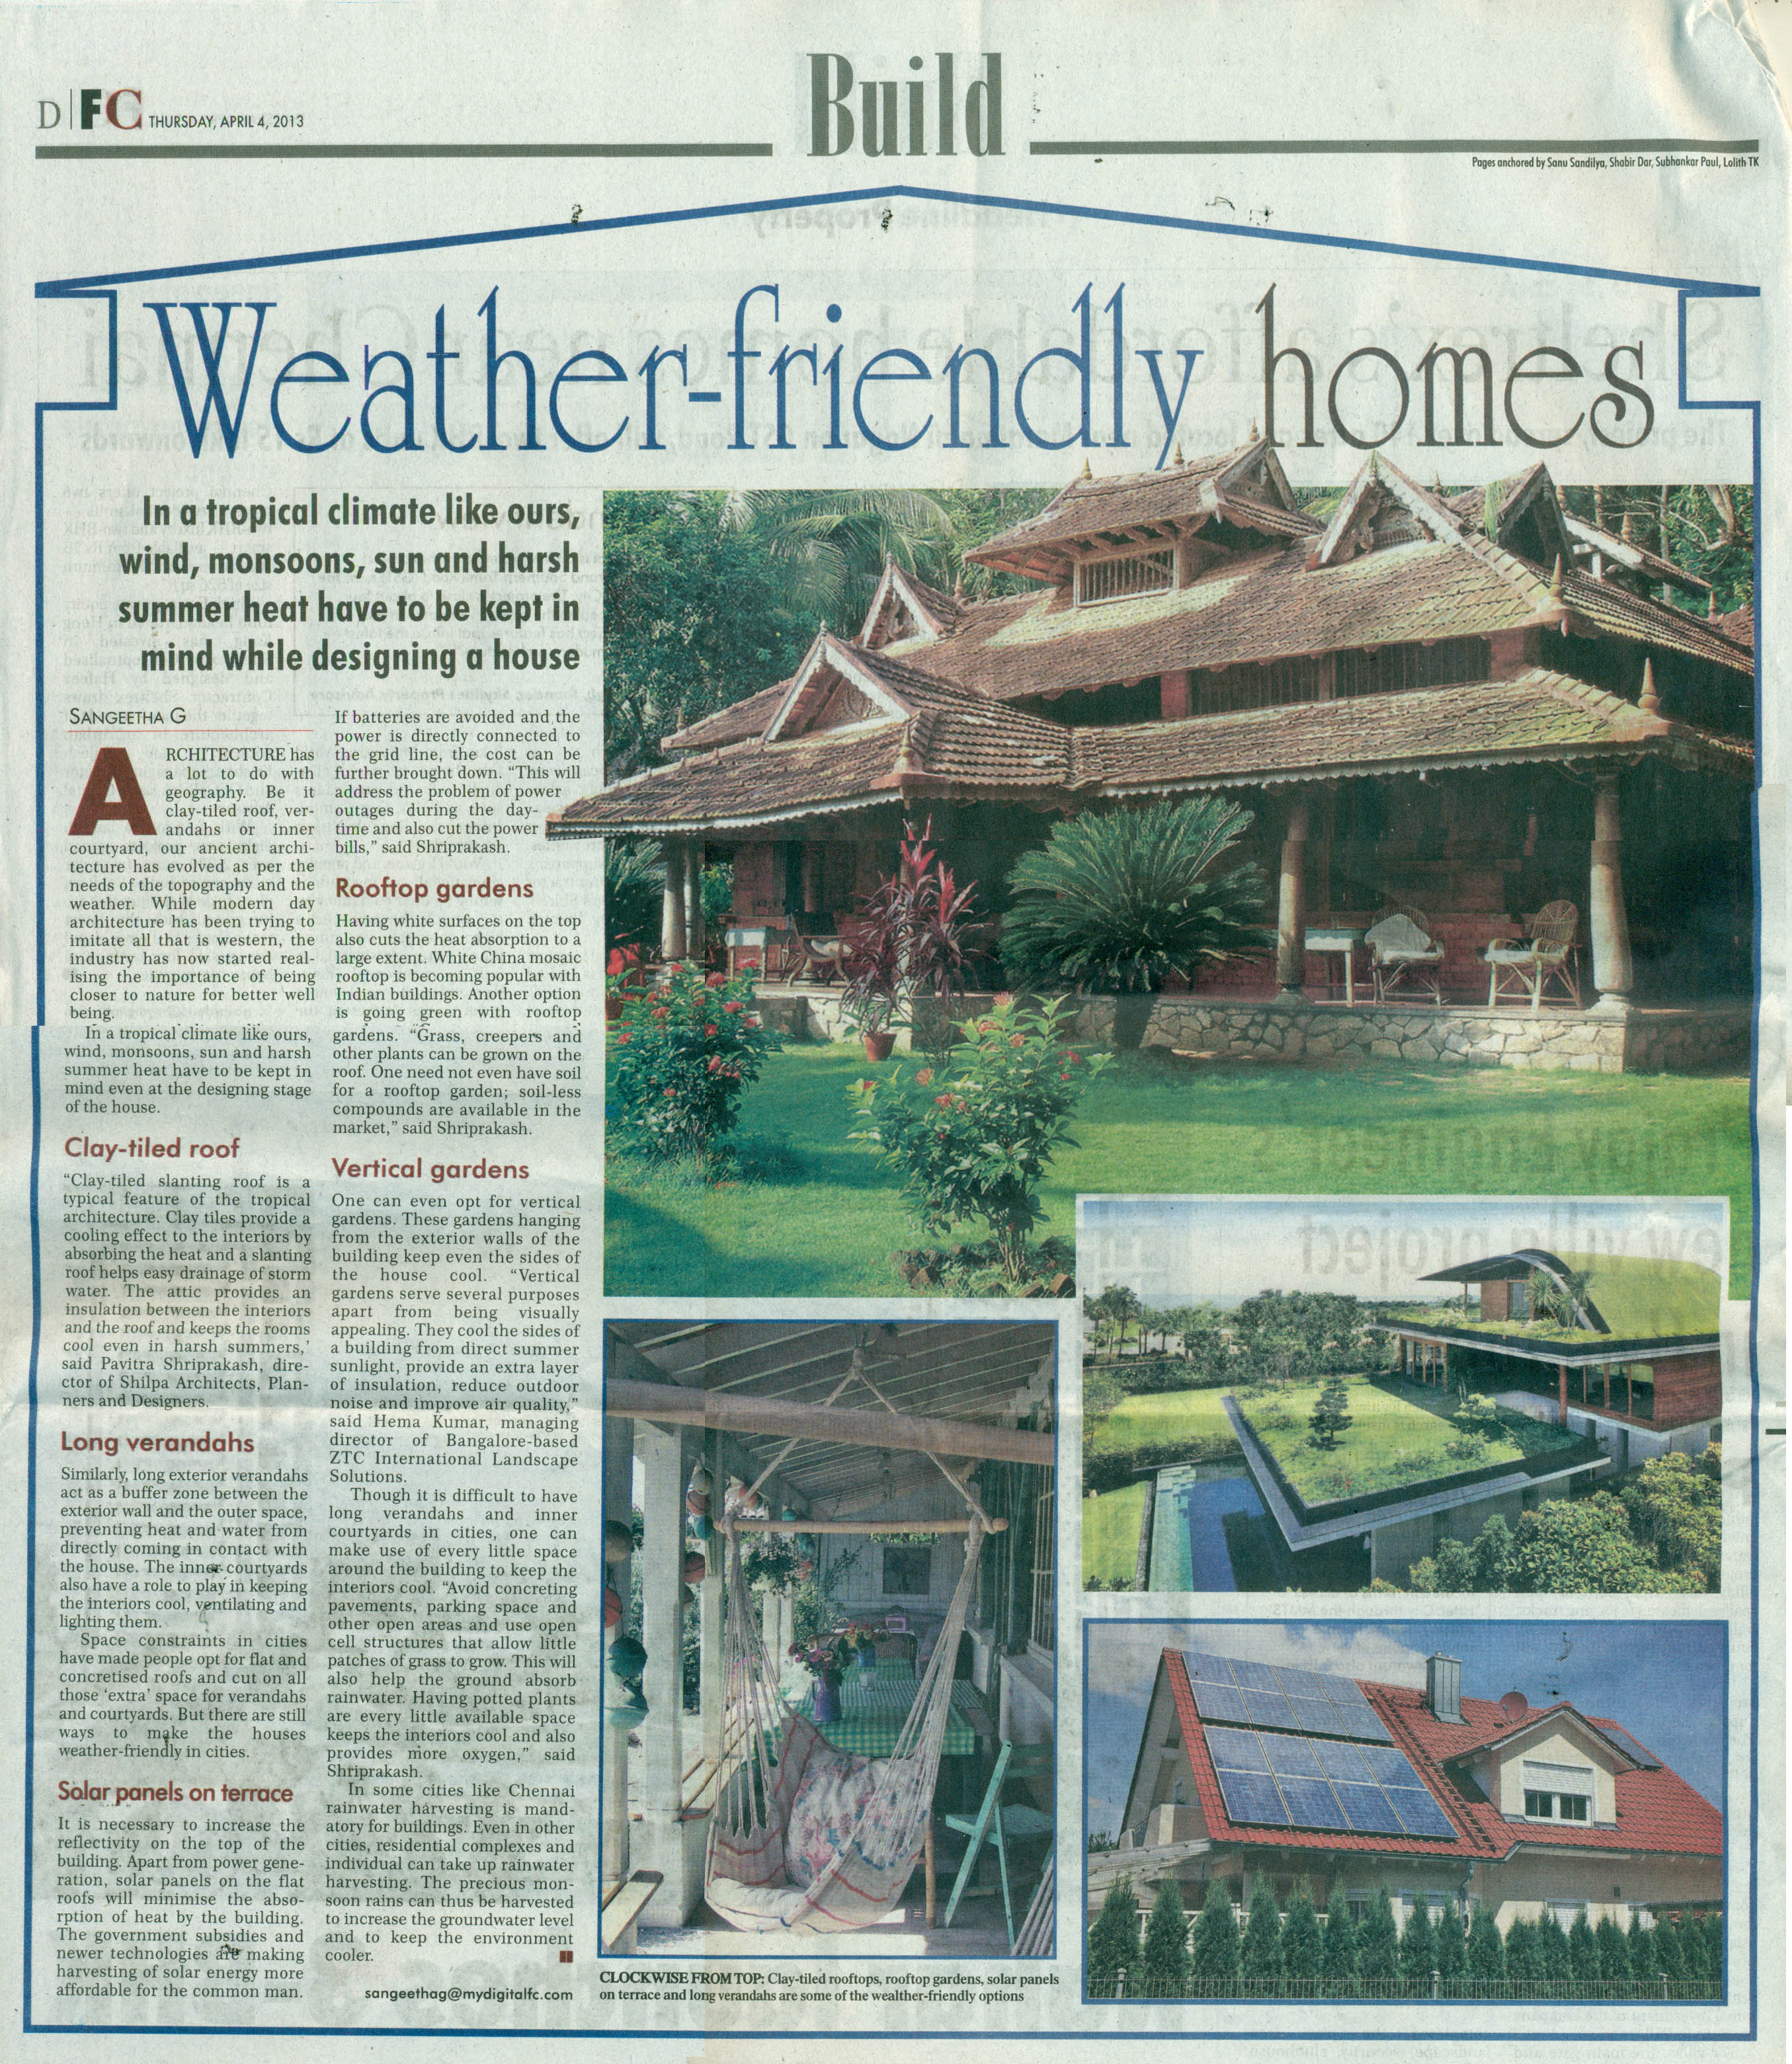 Financial Chronicle, 04 Apr 2013 - Weather friendly homes